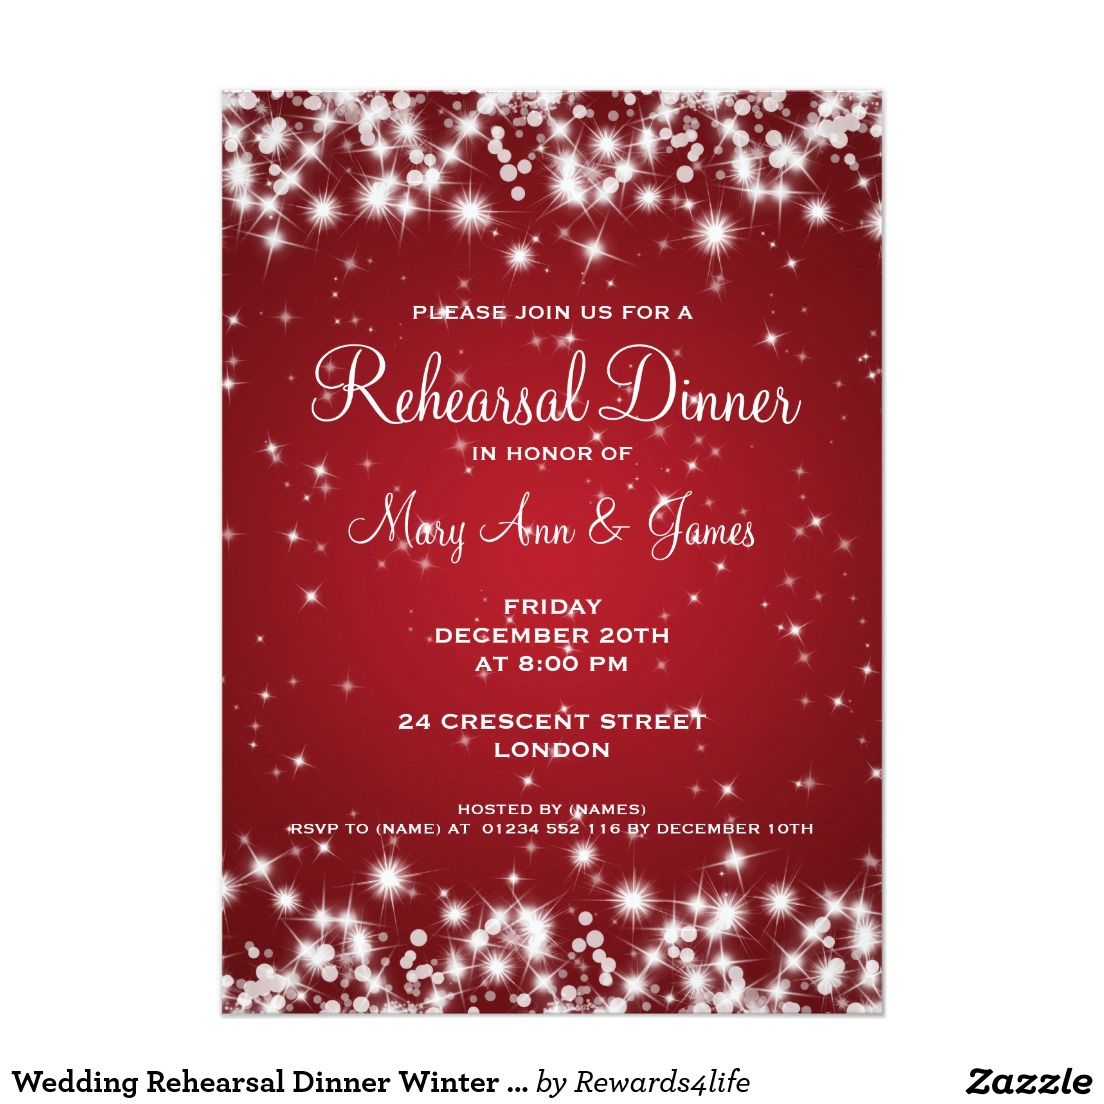 Wedding Rehearsal Dinner Winter Sparkle Red Card Rehearsal Dinners